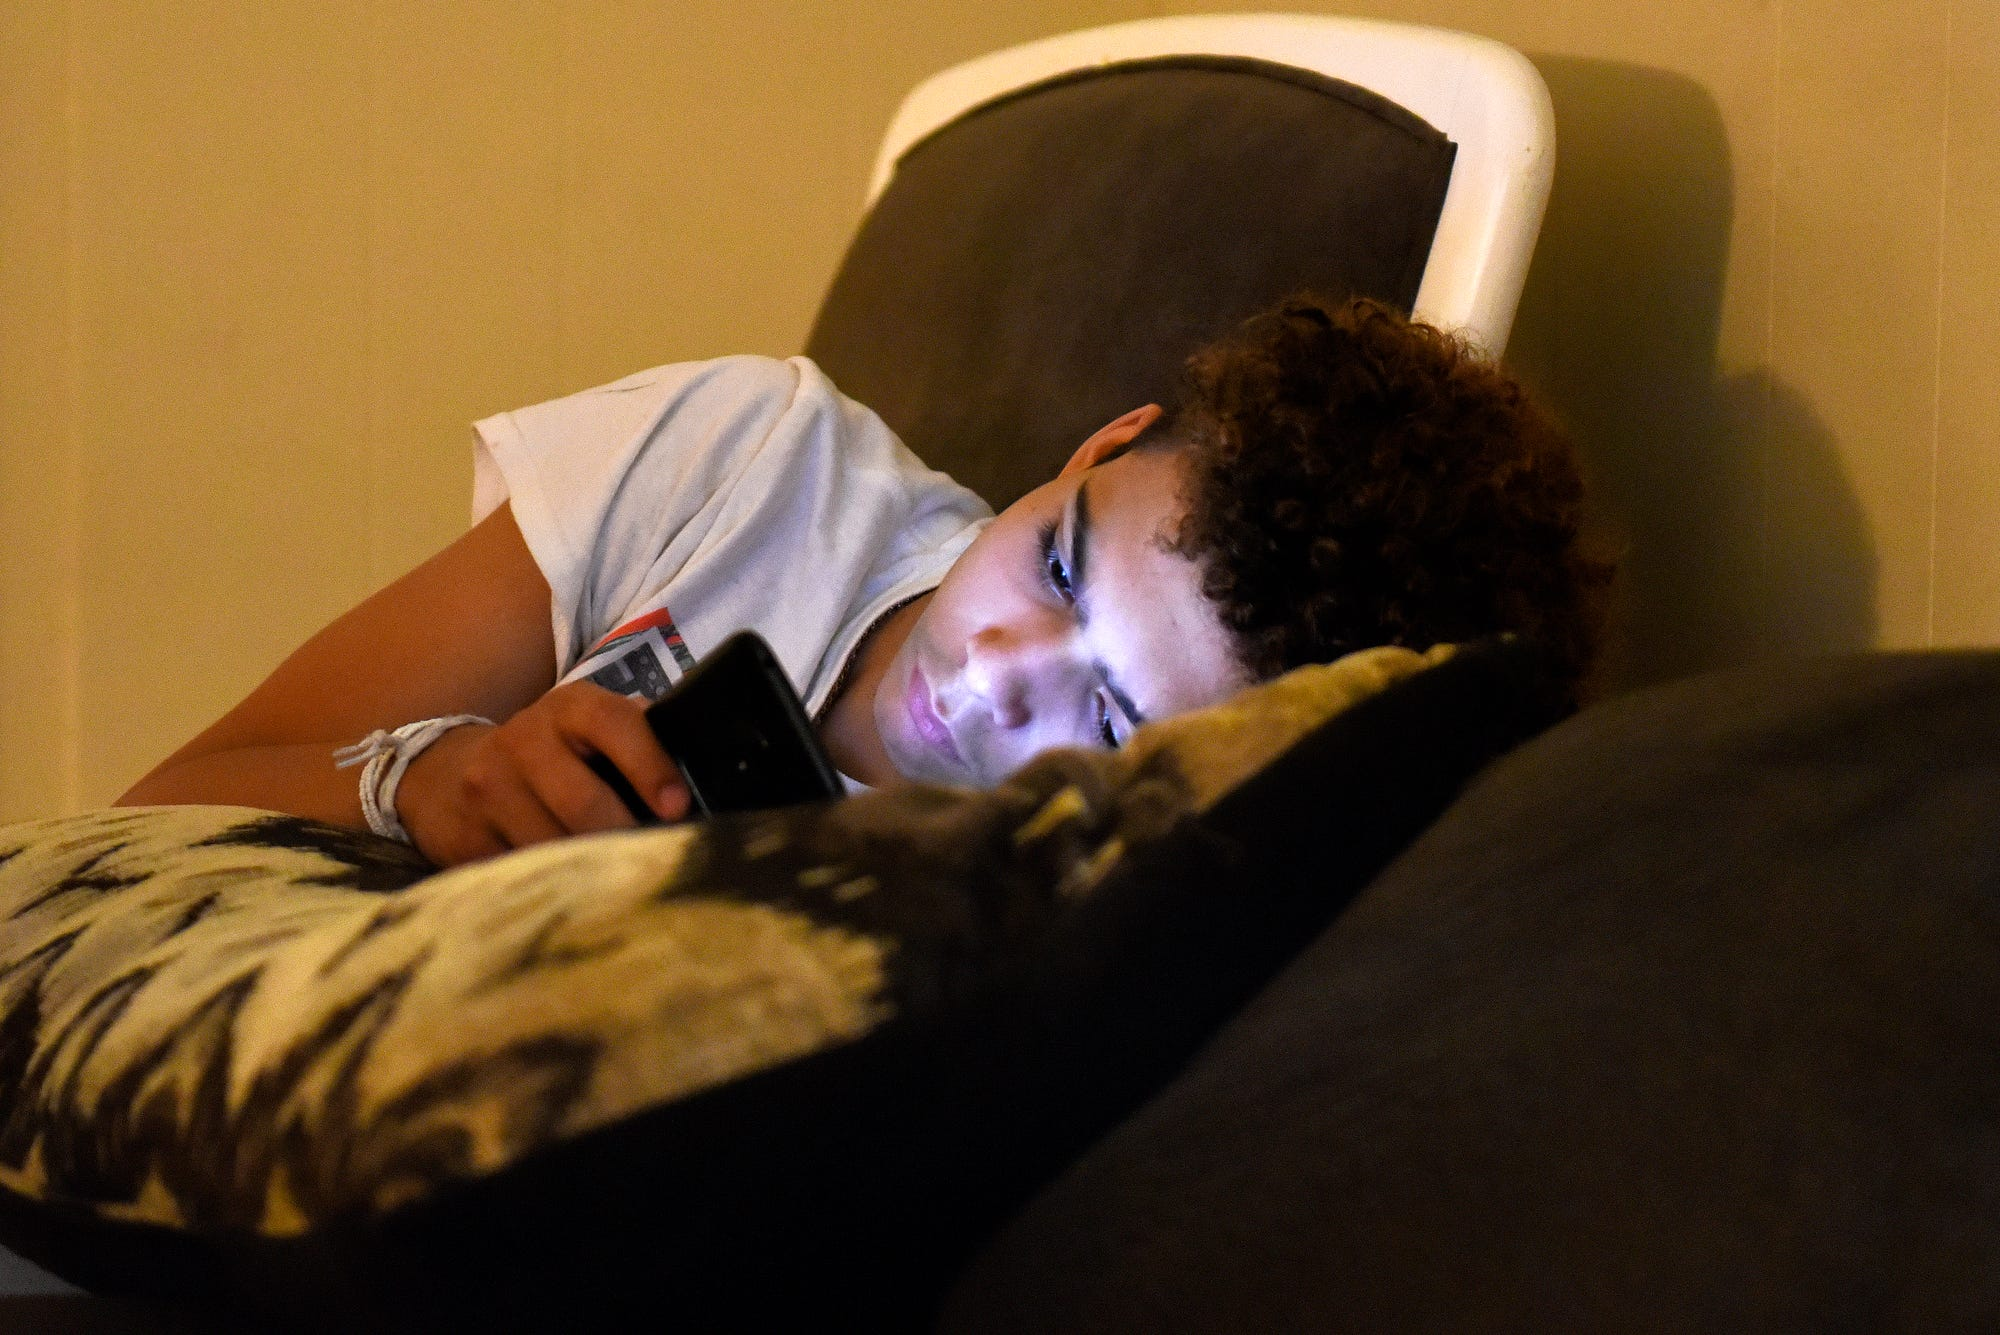 Lazarus Meissner looks at his phone while at home on Friday, July 26, 2019, in Lansing.